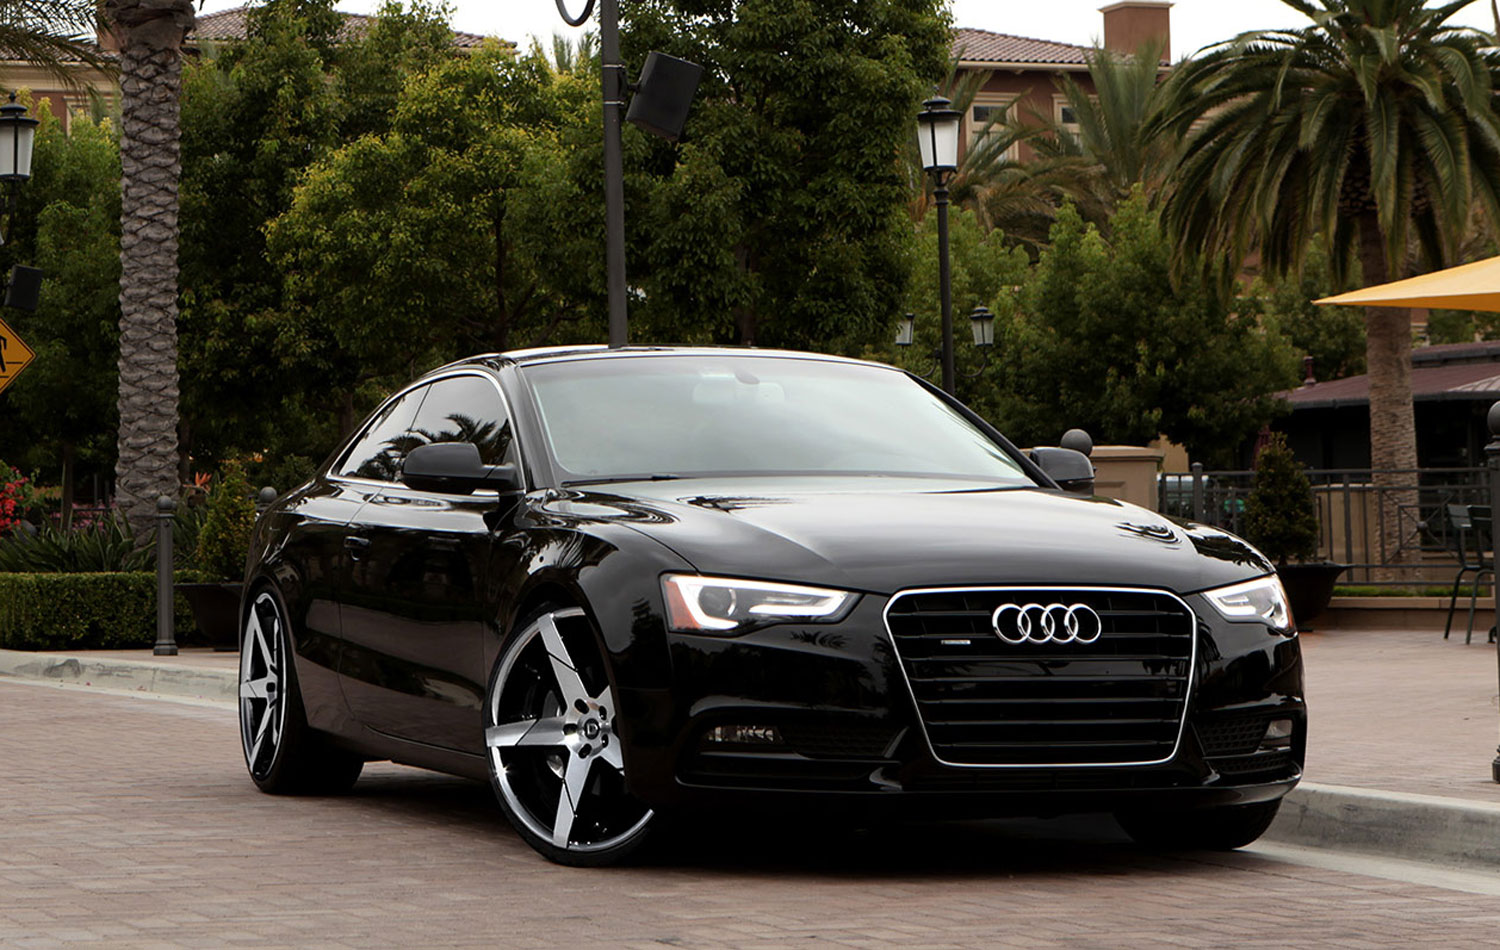 Audi A5 Wheels Custom Rim And Tire Packages